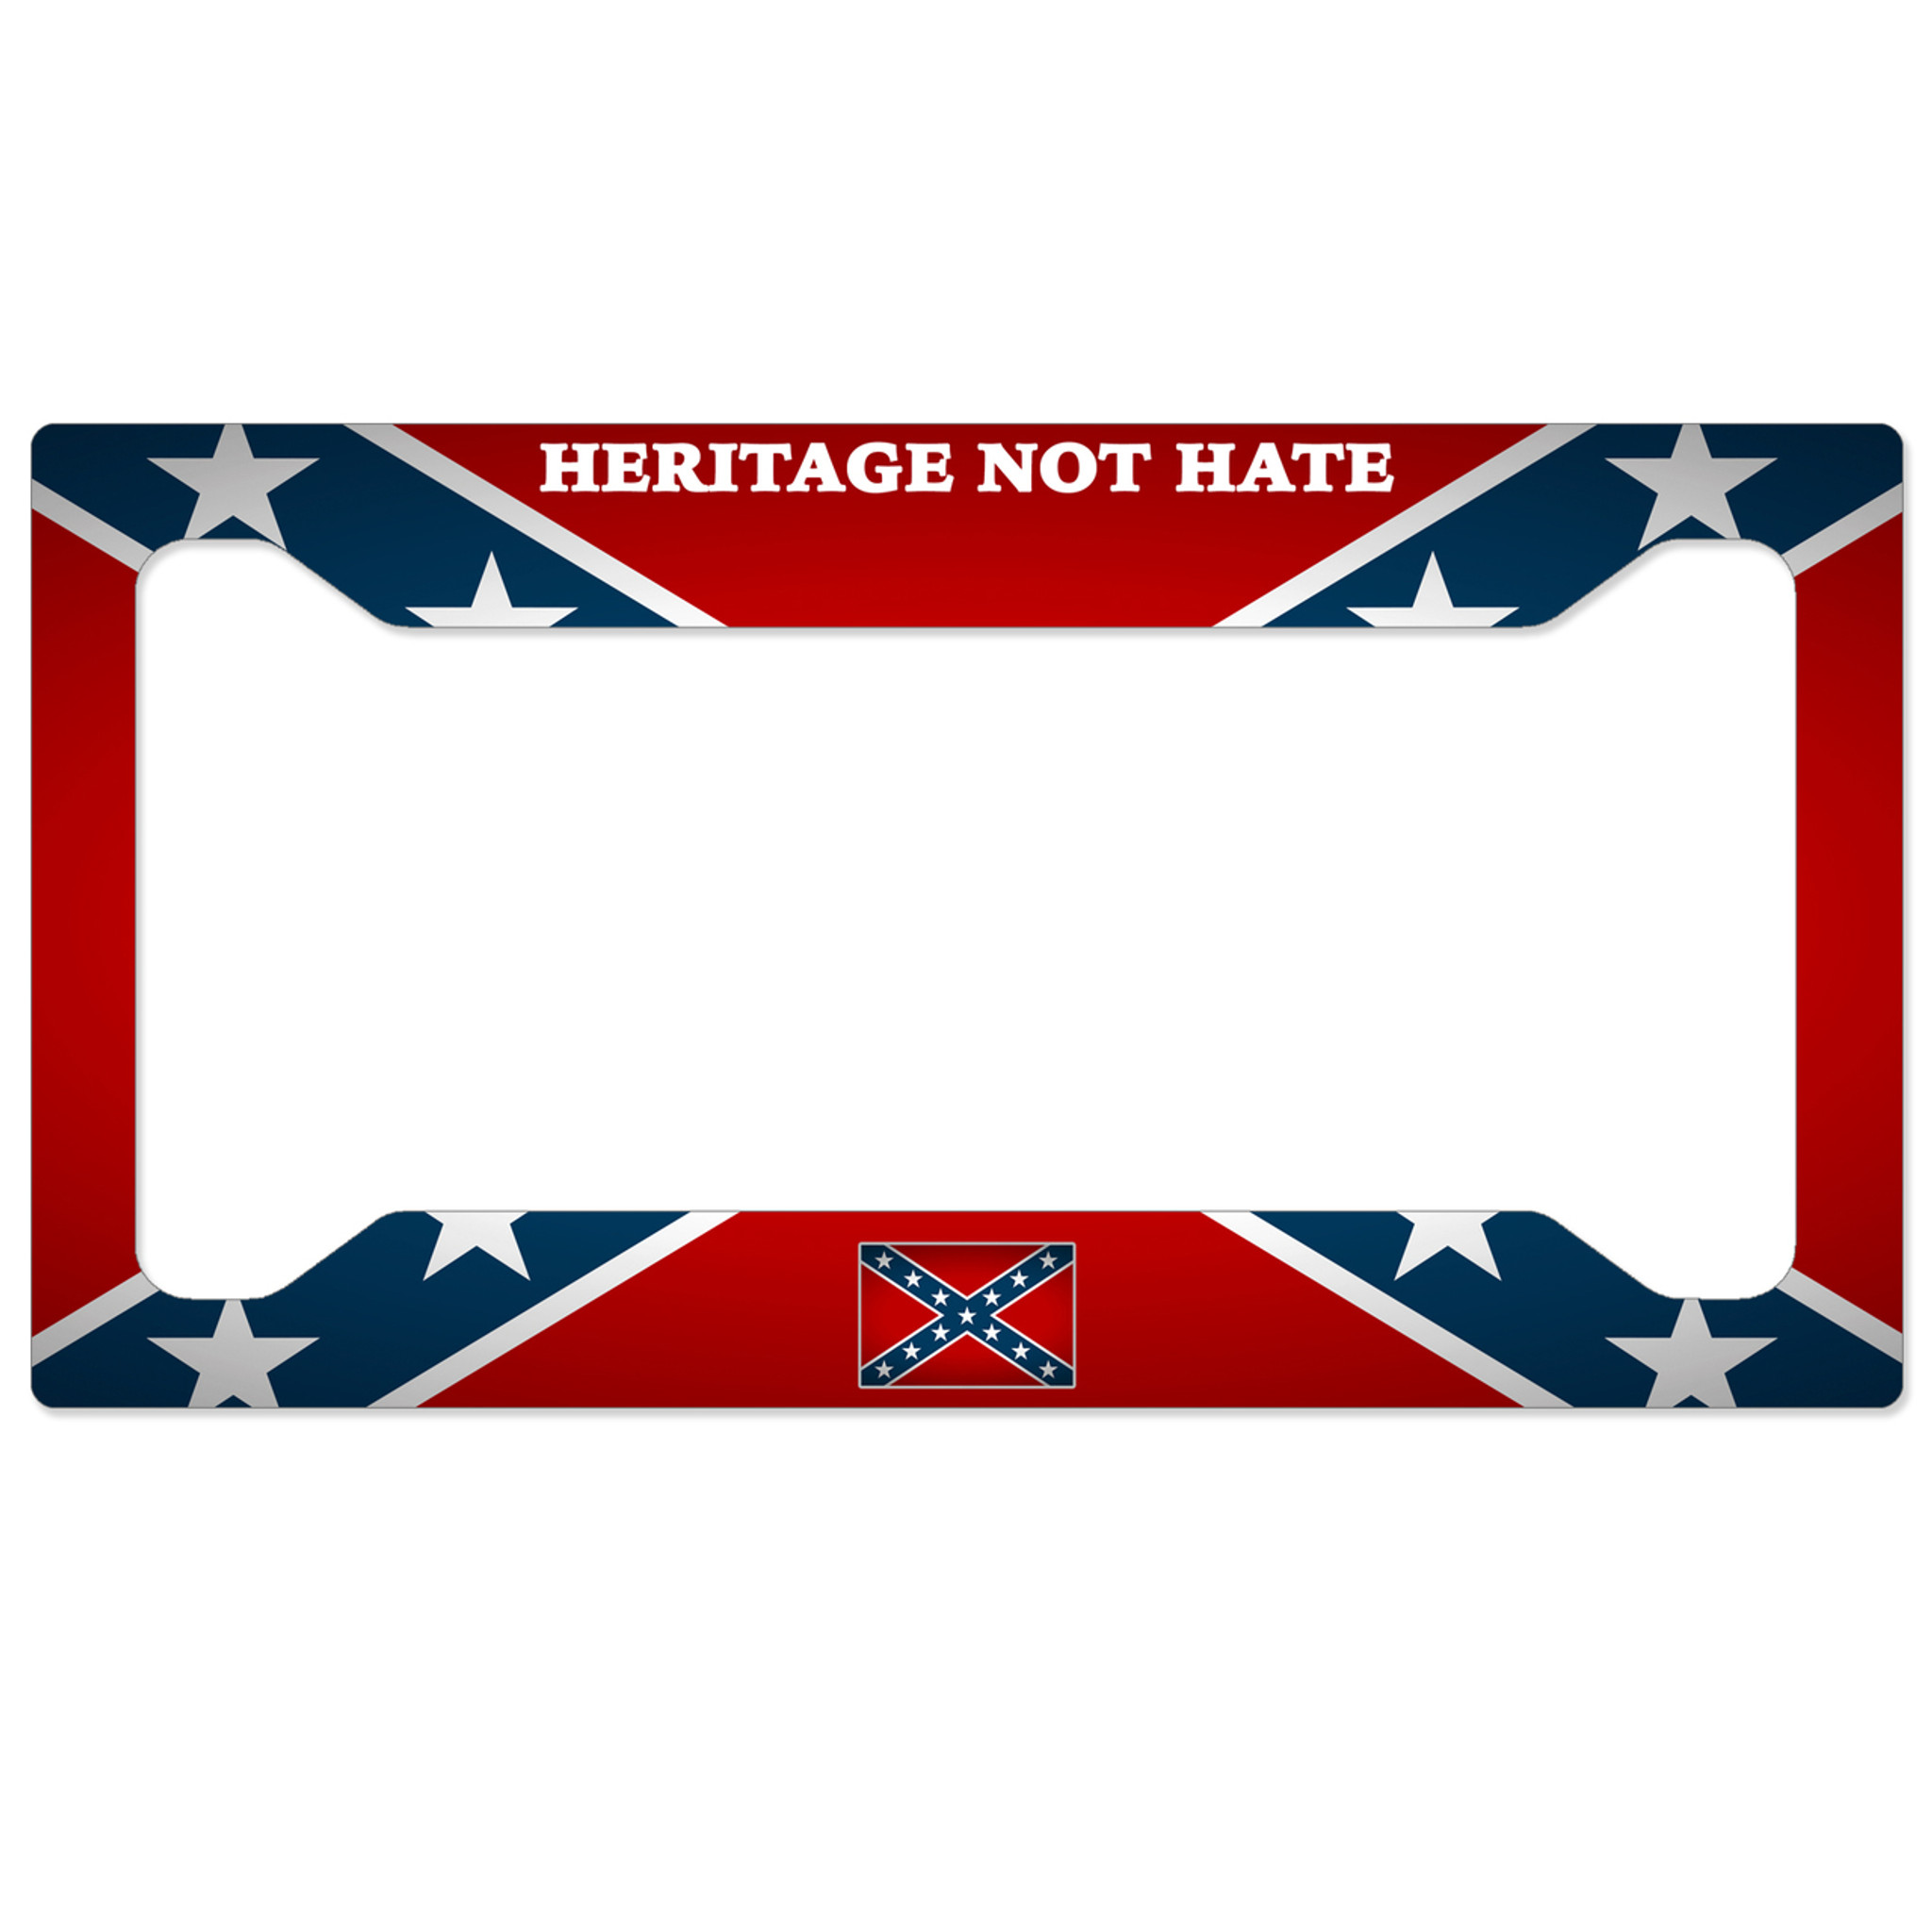 Aluminum License Plate Frame >> Confederate Flag License Plate Frame - Heritage Not Hate - SimplyCustomized